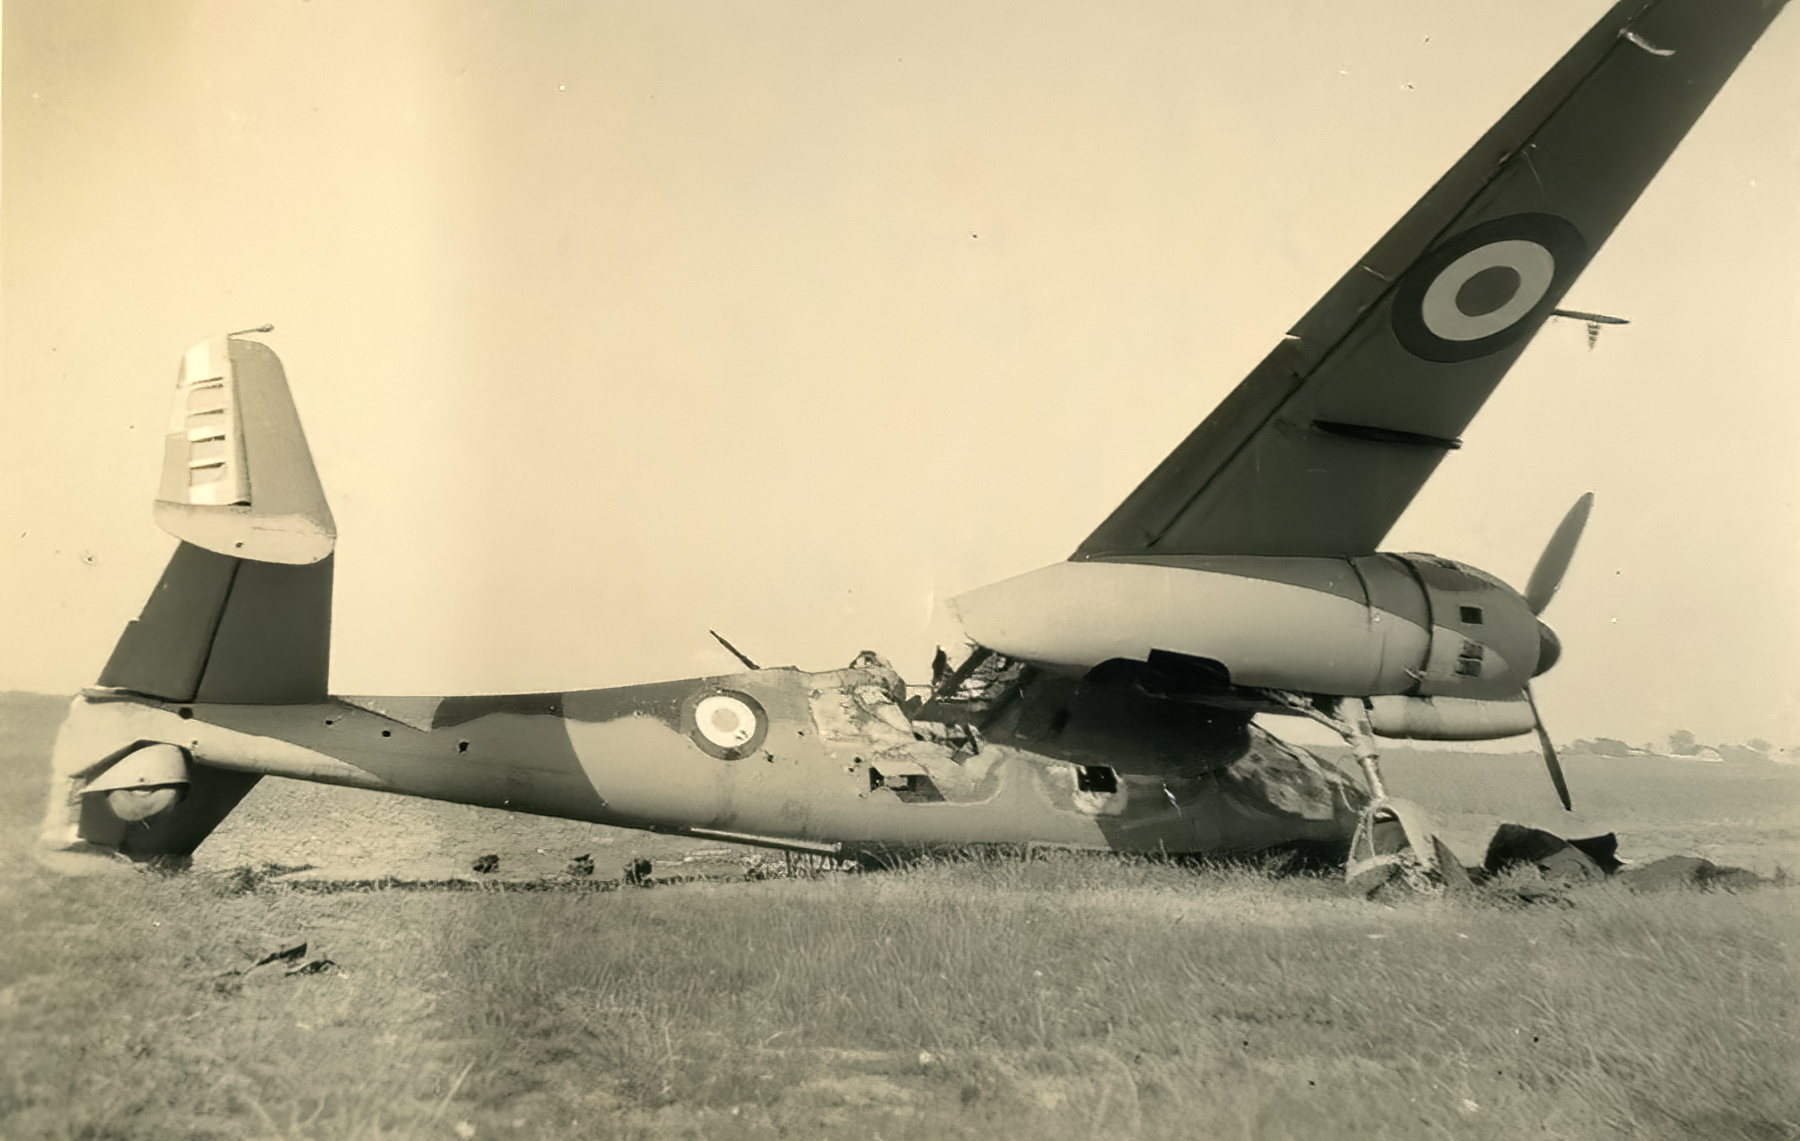 French Airforce Breguet Bre 690 destroyed on the ground battle of France May Jun 1940 ebay 01